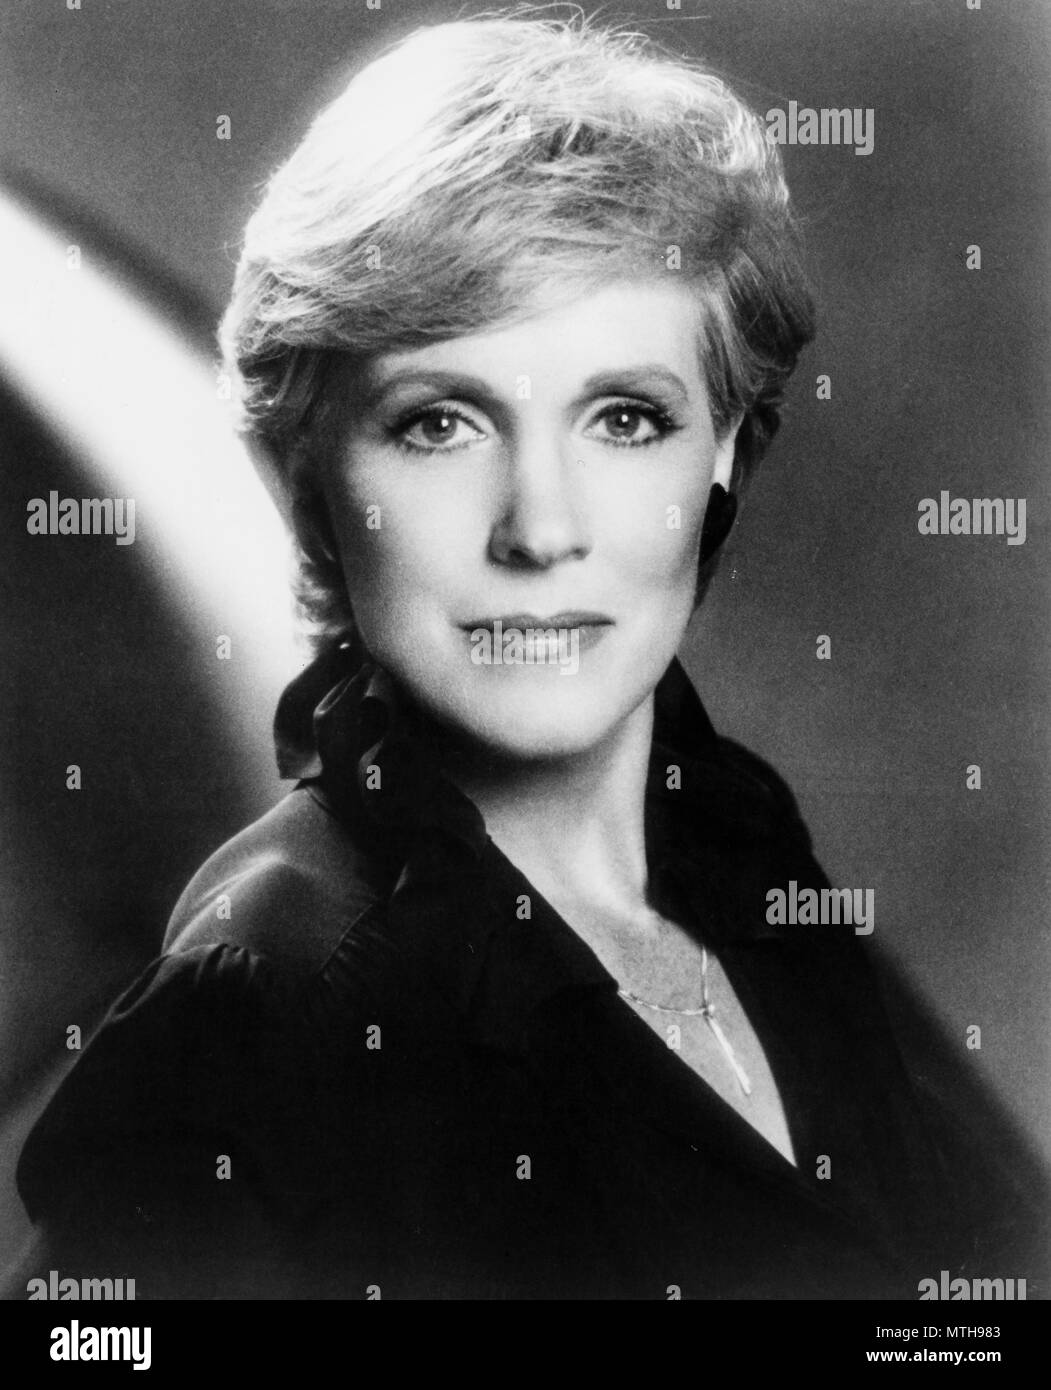 julie andrews, 1983 - Stock Image